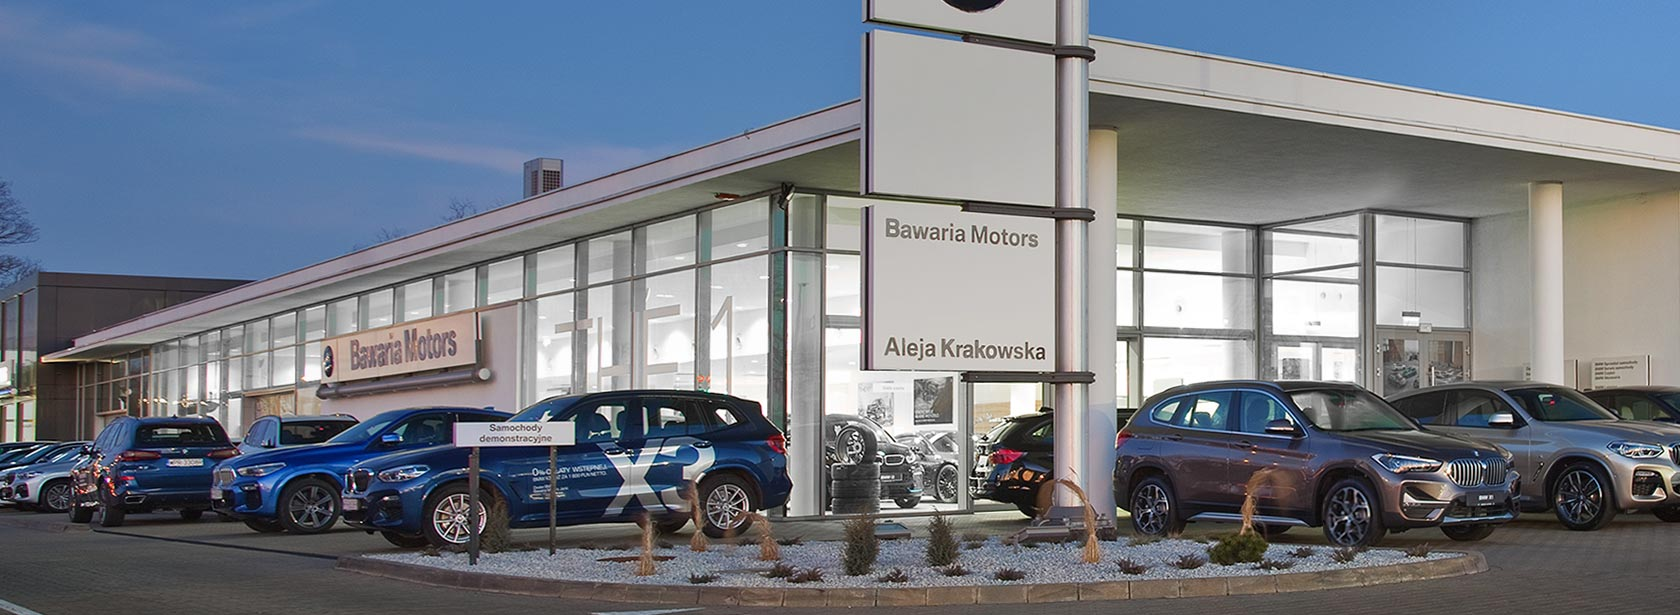 Salon Dealer BMW Bawaria Motors Janki.